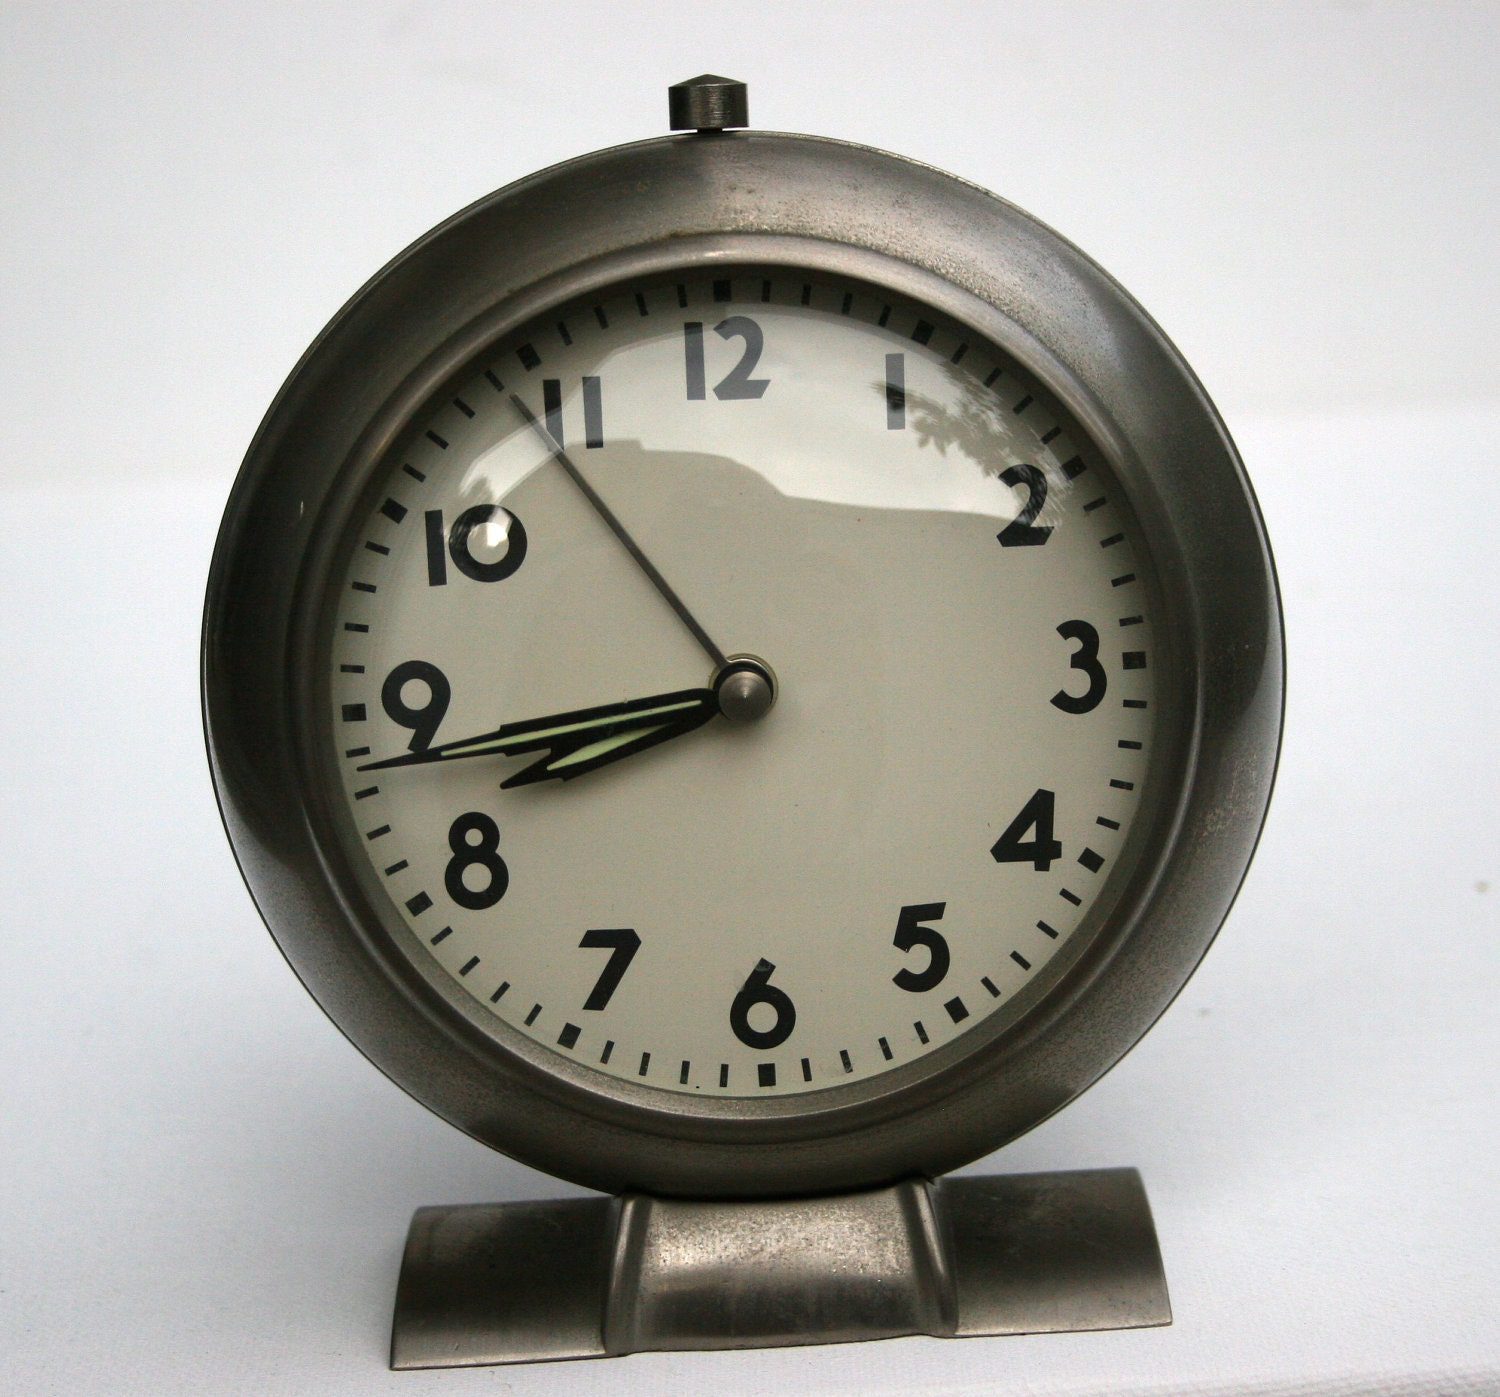 Vintage Silver Bedside Analog Clock With Arms By